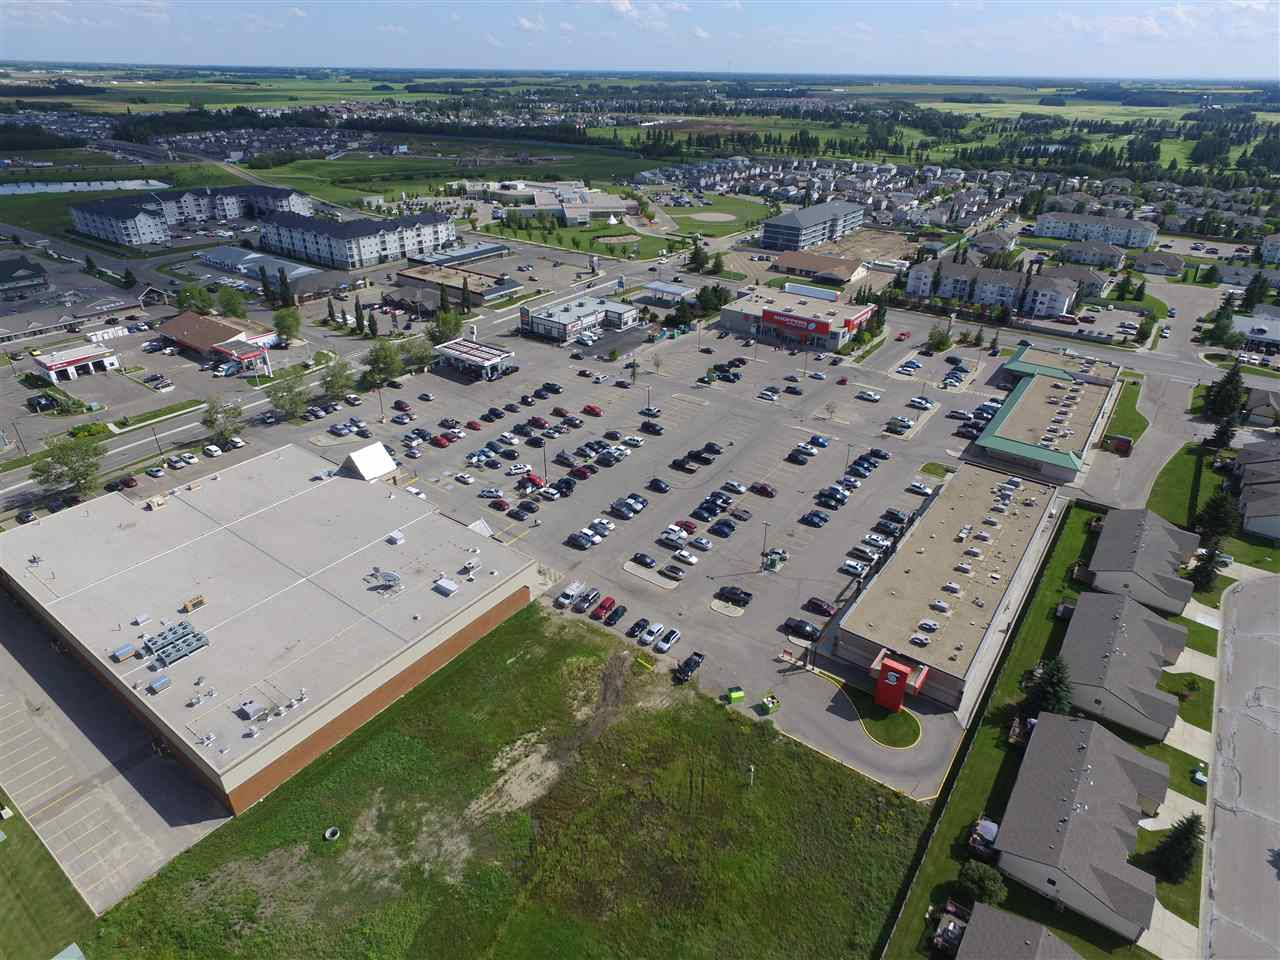 Sunrise Village in Stony Plain in now available for lease. Sunrise Village Plaza is just off Highway 16A and across the street from the regional hospital. This high traffic location benefits from many retail anchors with high daily traffic counts. We are presently offering this 4 bay expansion with unit 2 units remaining in our new retail phase or 2 in our existing phase from $23/foot. Our sizes range from: Unit 501-1,808 sq.ft, and Unit 503-1,312 sq.ft are ideal for medical, professional and retail businesses looking to grow or increase your presence in this high traffic location with all new construction. Major anchors include: Shoppers Drug Mart, Safeway w/Starbucks, Original Joes, Edo Japan, Scotia Bank and more. Ample parking & signage! Lease rates from $4,363/month or $30-$32/ft NNN with operating costs of $10/ft including taxes, ready for immediate possessions. Ample signage opportunities.